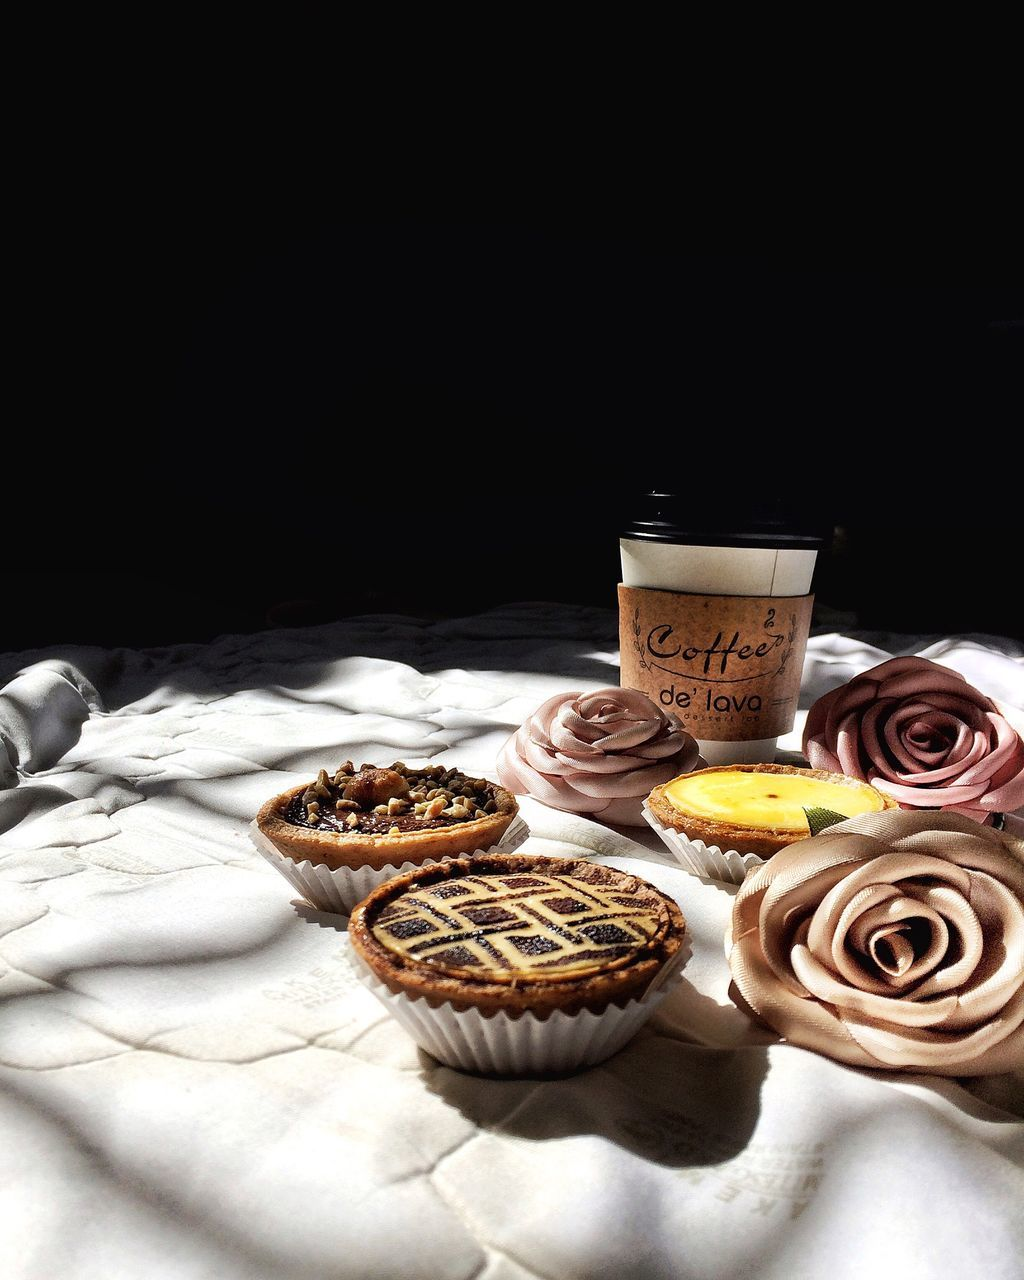 food and drink, sweet food, indulgence, cupcake, food, freshness, dessert, temptation, no people, baked, indoors, unhealthy eating, studio shot, ready-to-eat, black background, close-up, day